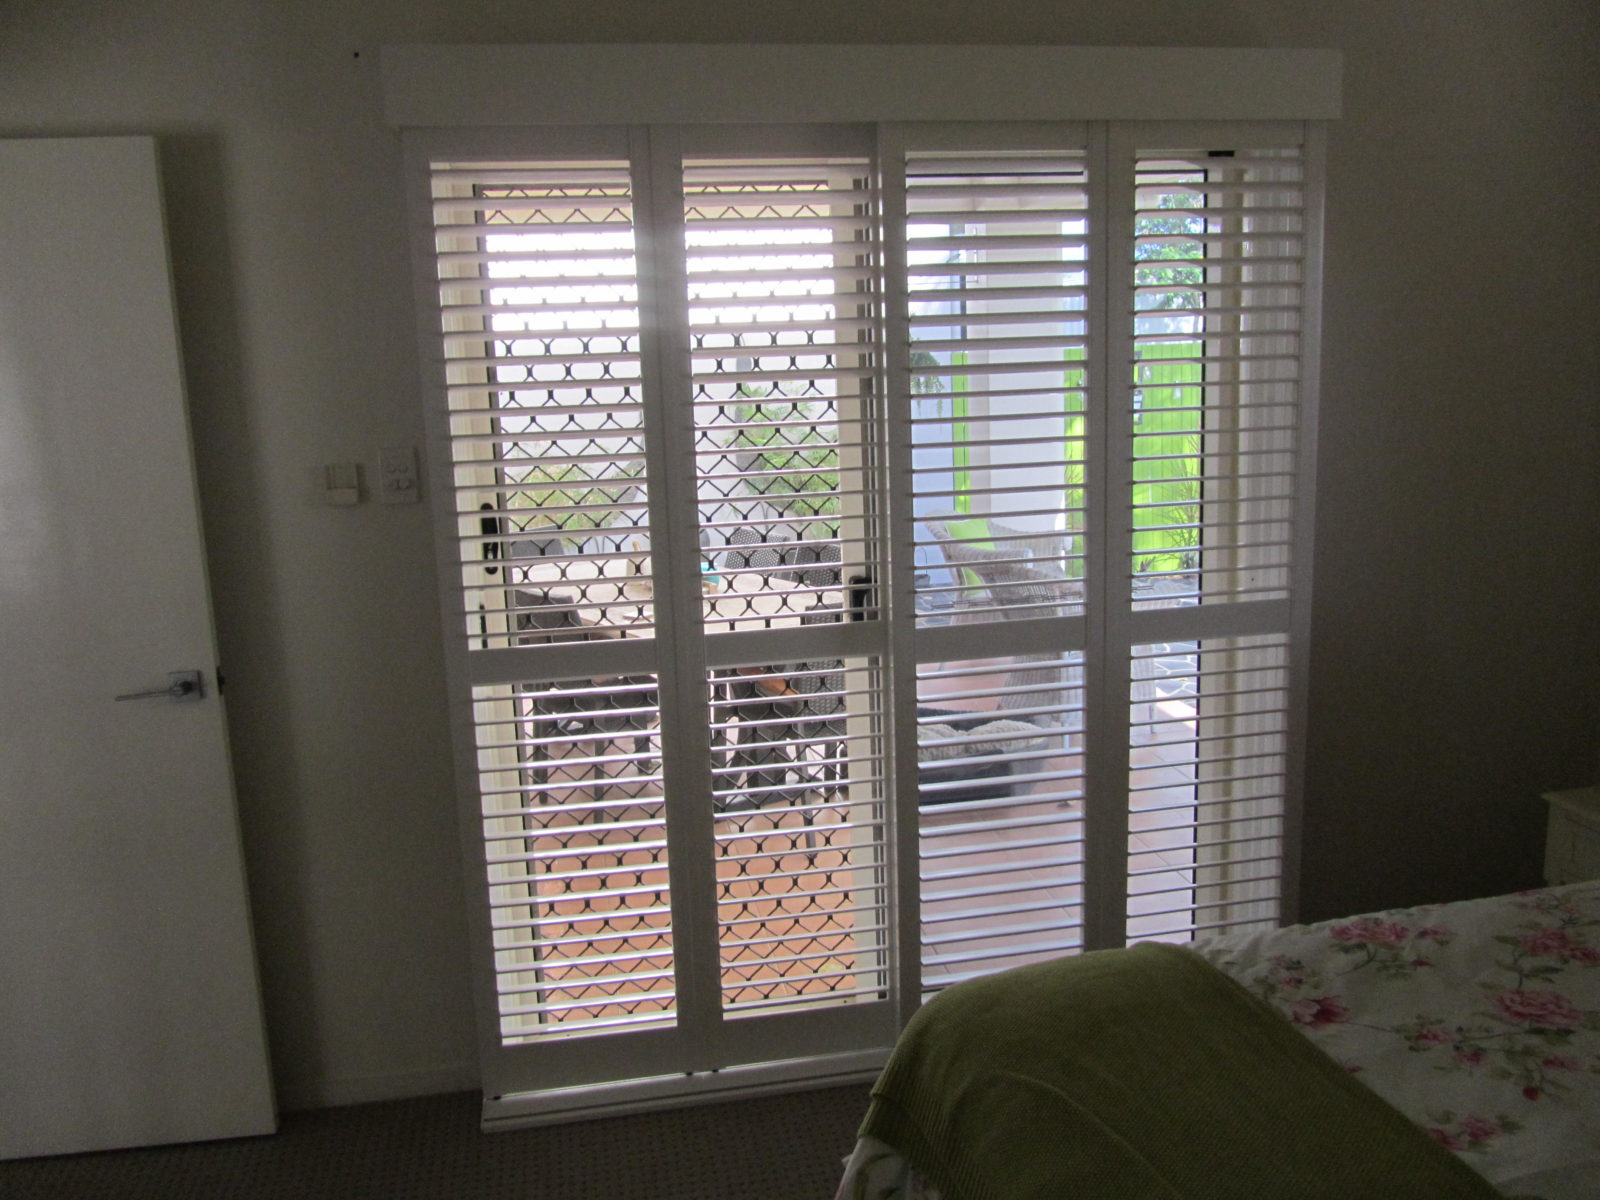 shutters pin there than on upholstered pad window the interior lovelier and is seat anything composite a